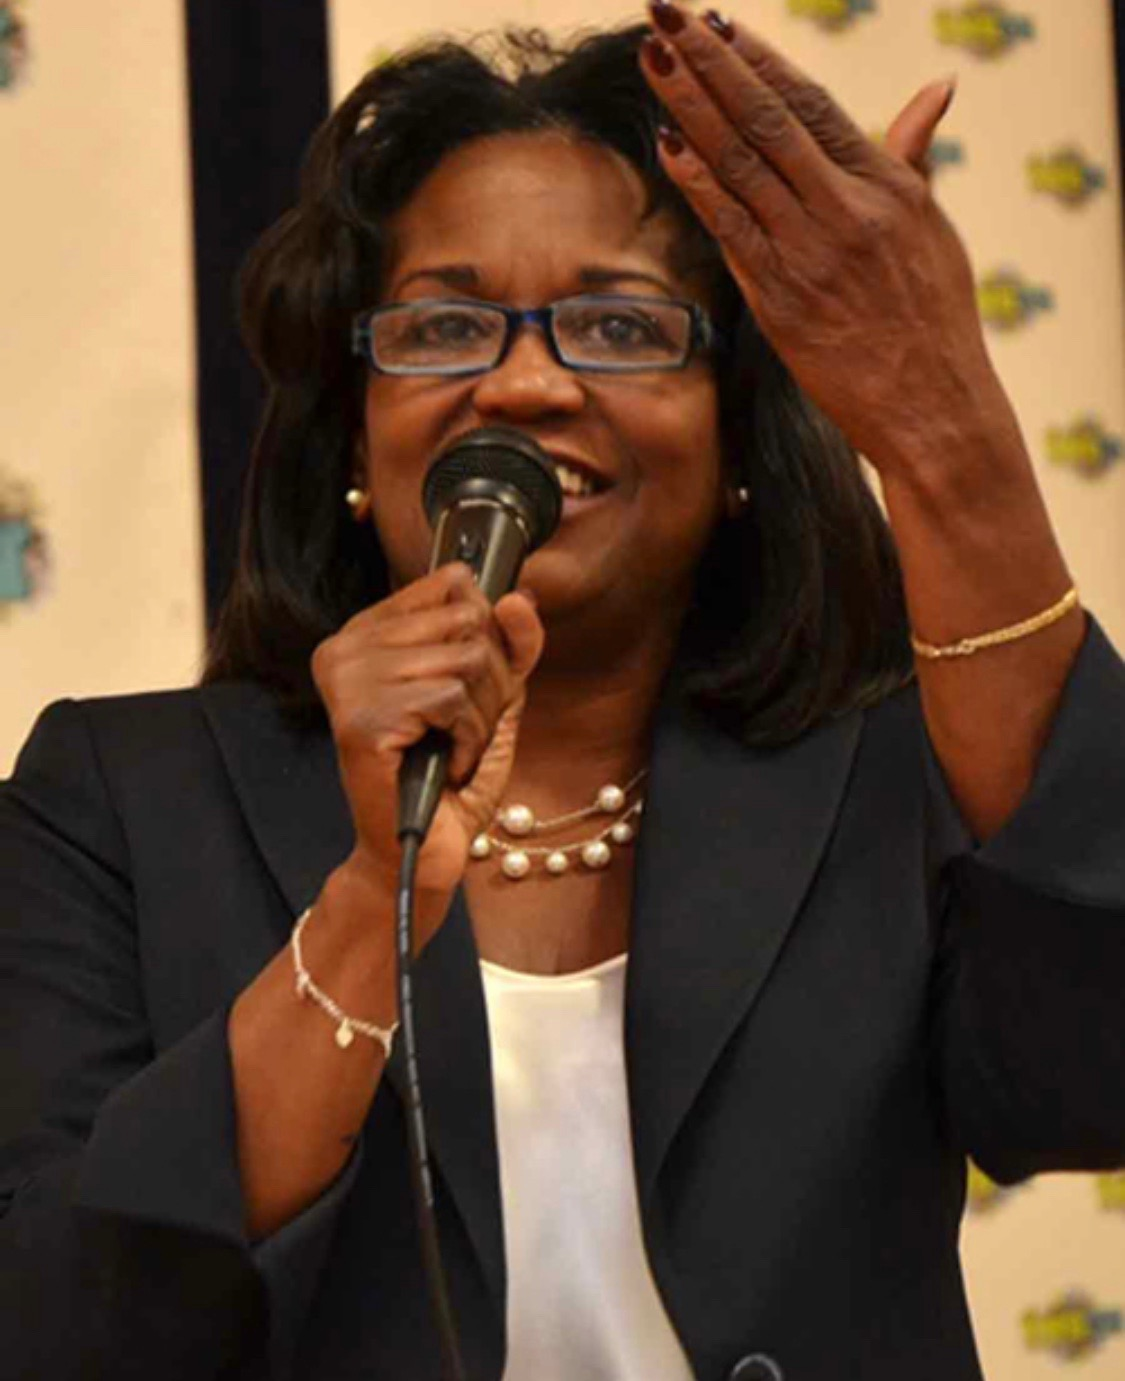 Previous Superintendent of the Los Angeles Unified School District, Michelle King died at the age of 57.